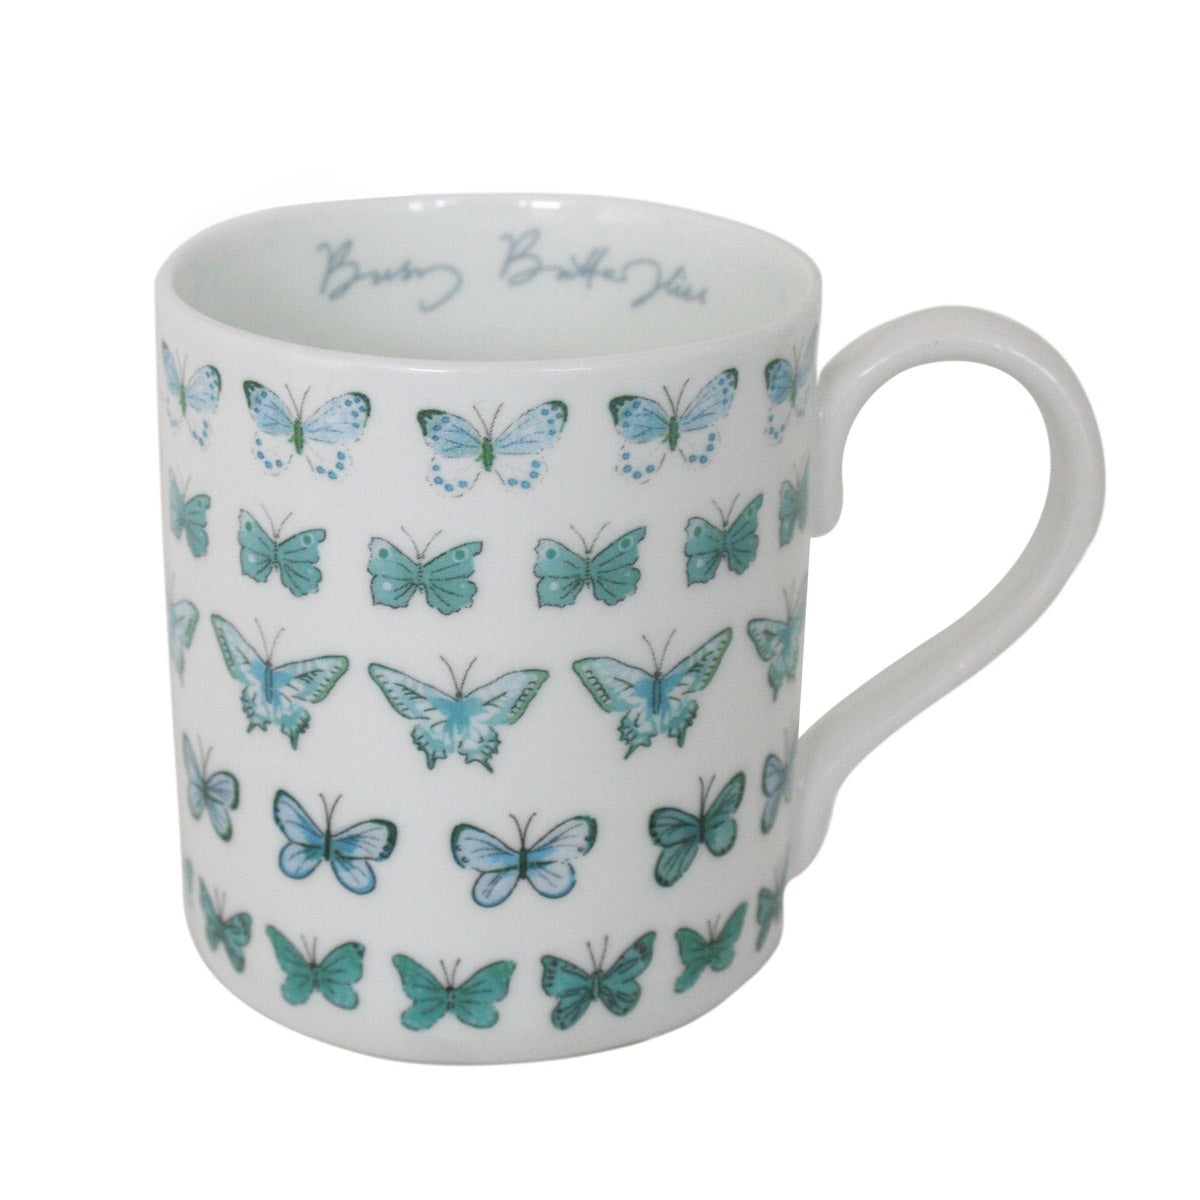 Busy Butterflies Mug